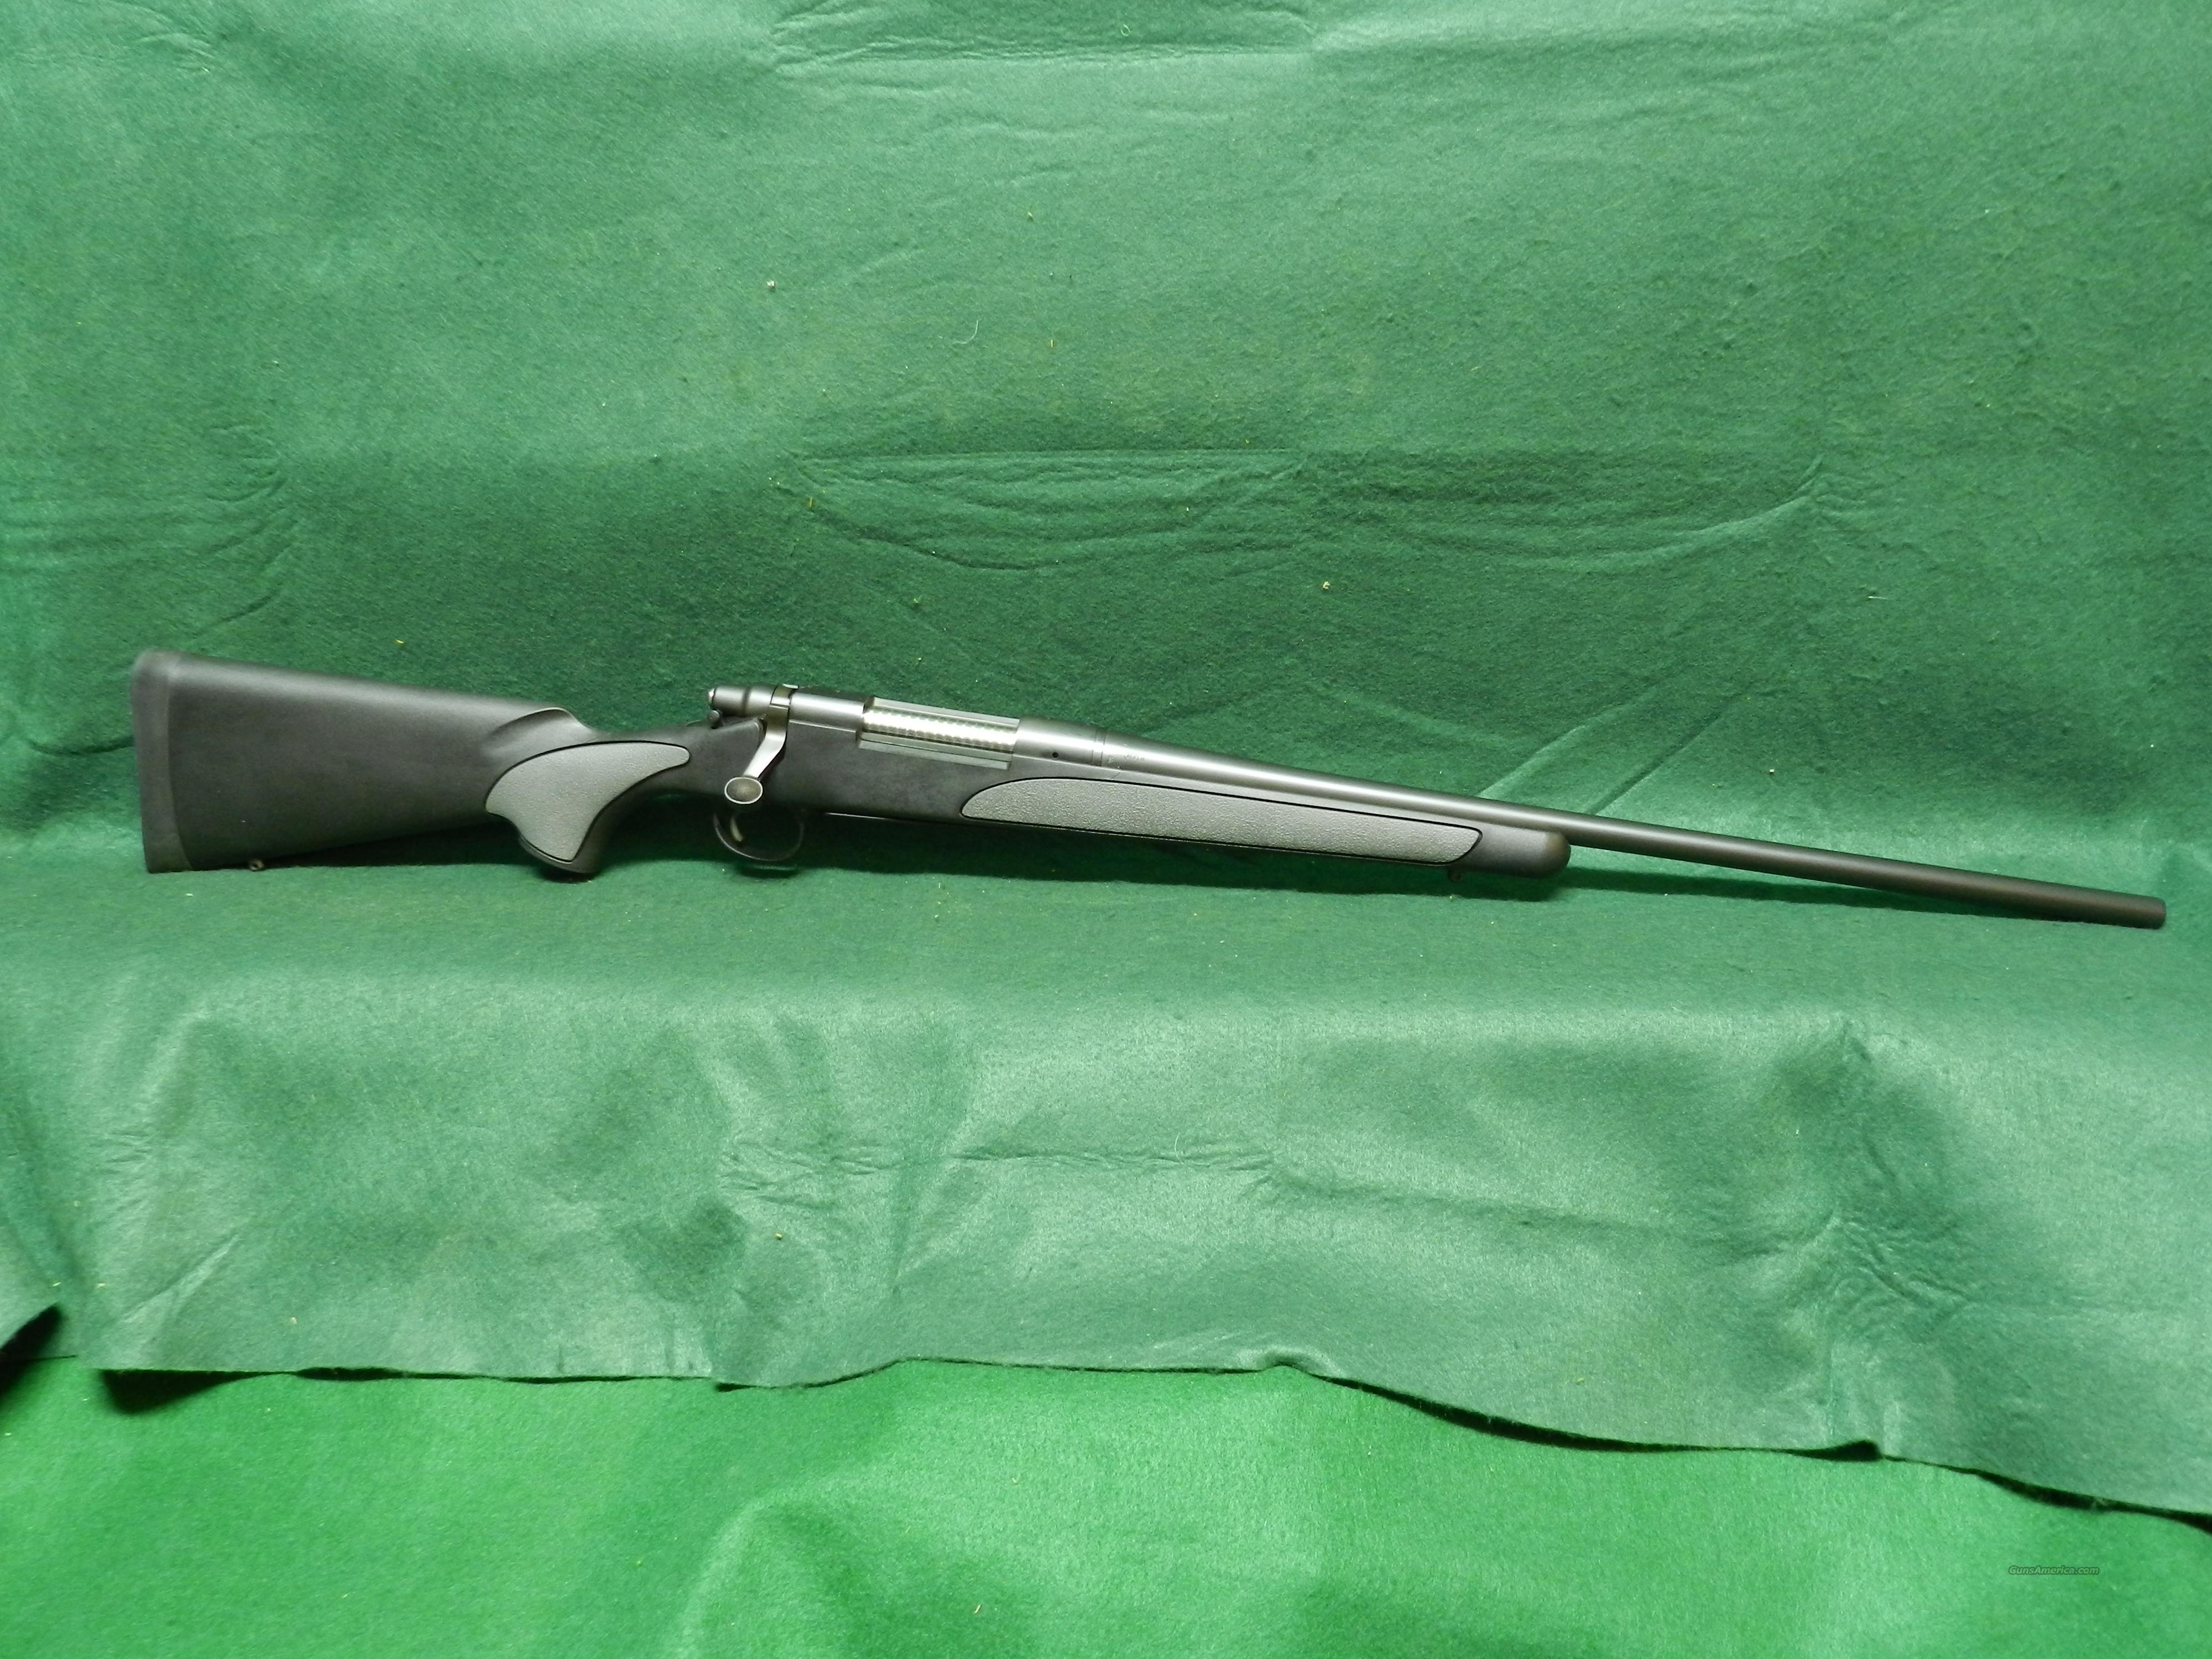 Remington Model 700 BDL Dale Earnhardt Jr. Edition  Guns > Rifles > Remington Rifles - Modern > Model 700 > Sporting